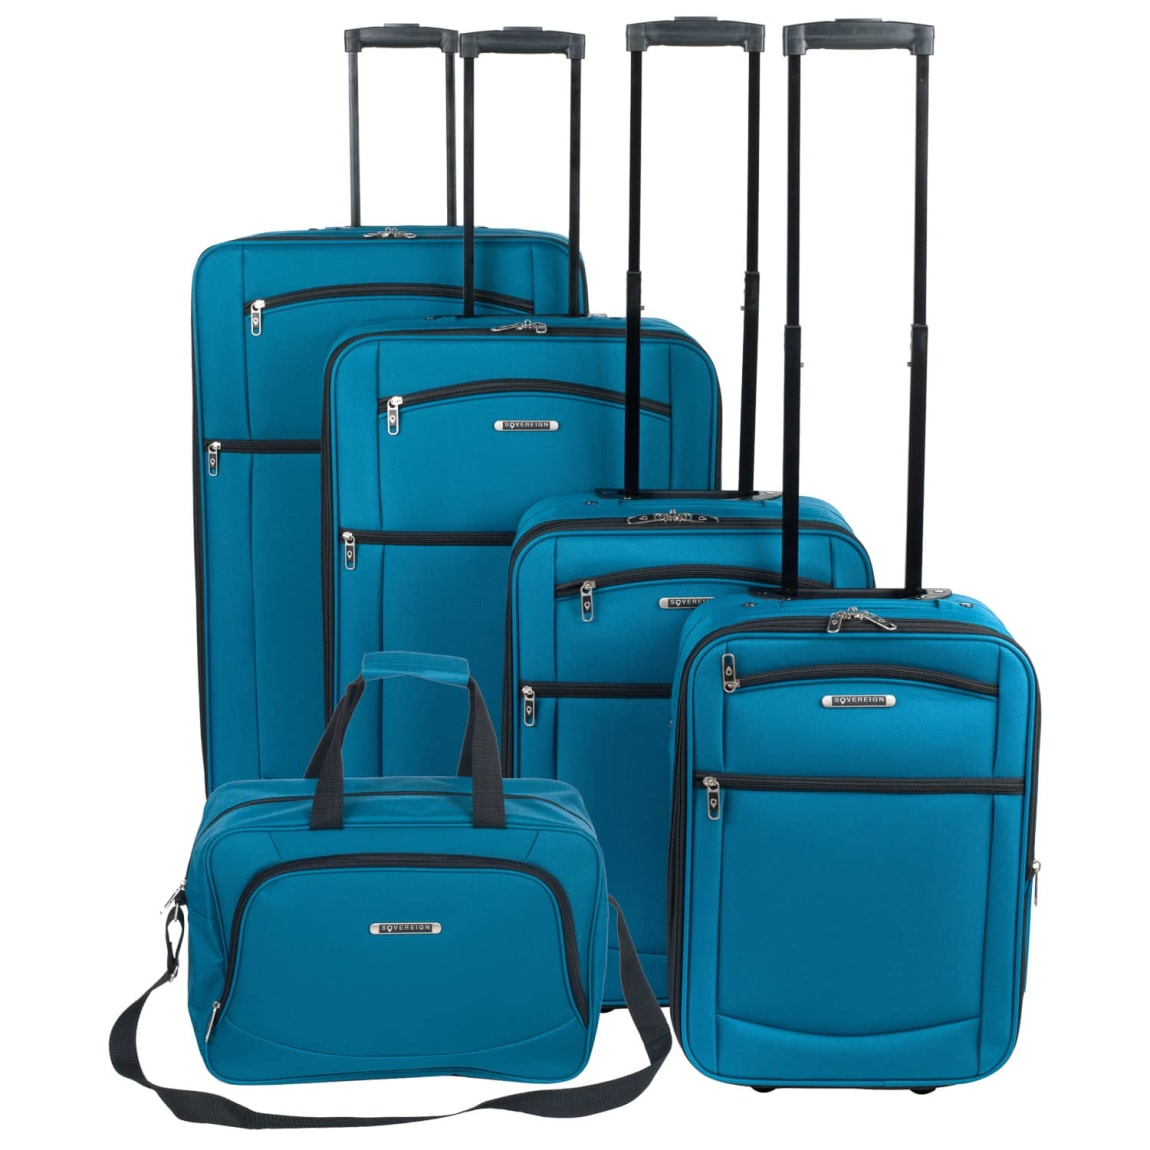 Sovereign Suitcase range - Teal